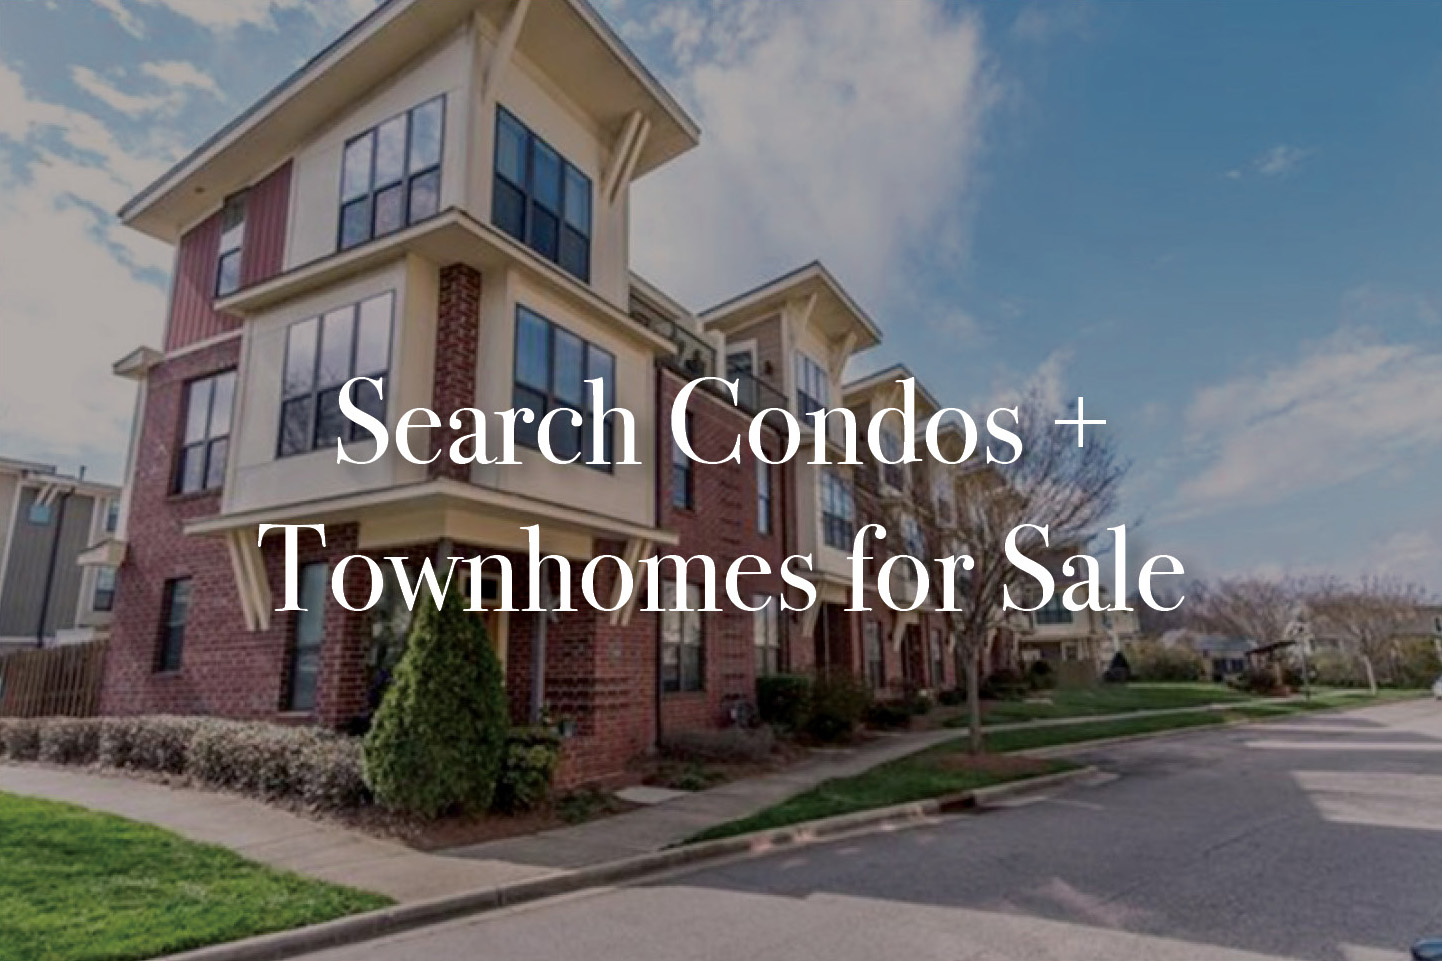 Brick condos with back trim windows and text Search Condos Townhomes for Sale in white font over